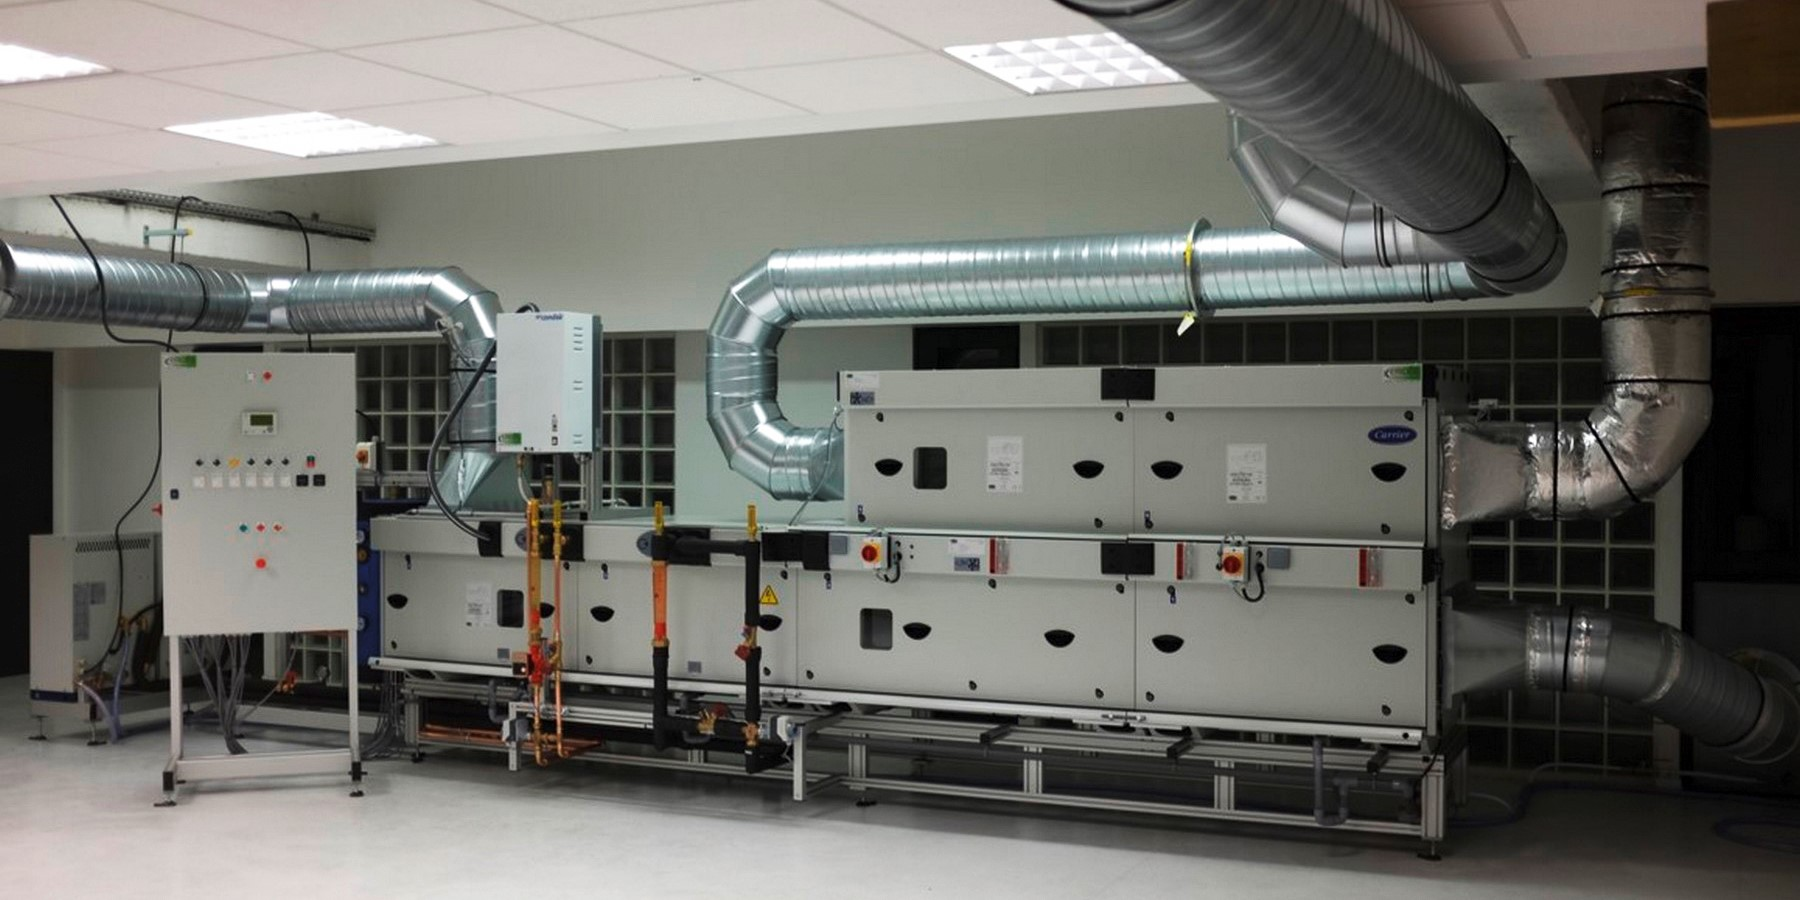 Plateforme Centrale de Conditionnement d'Air